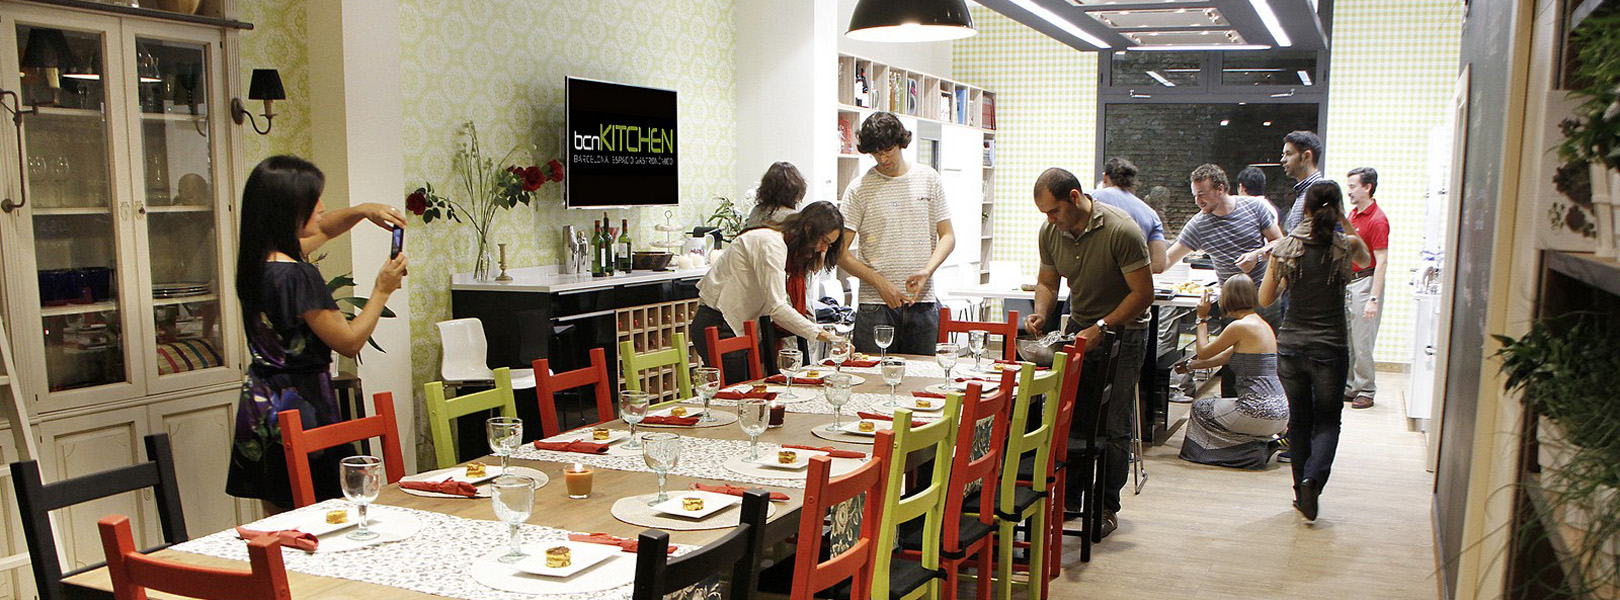 bcnKITCHEN   El Born 6